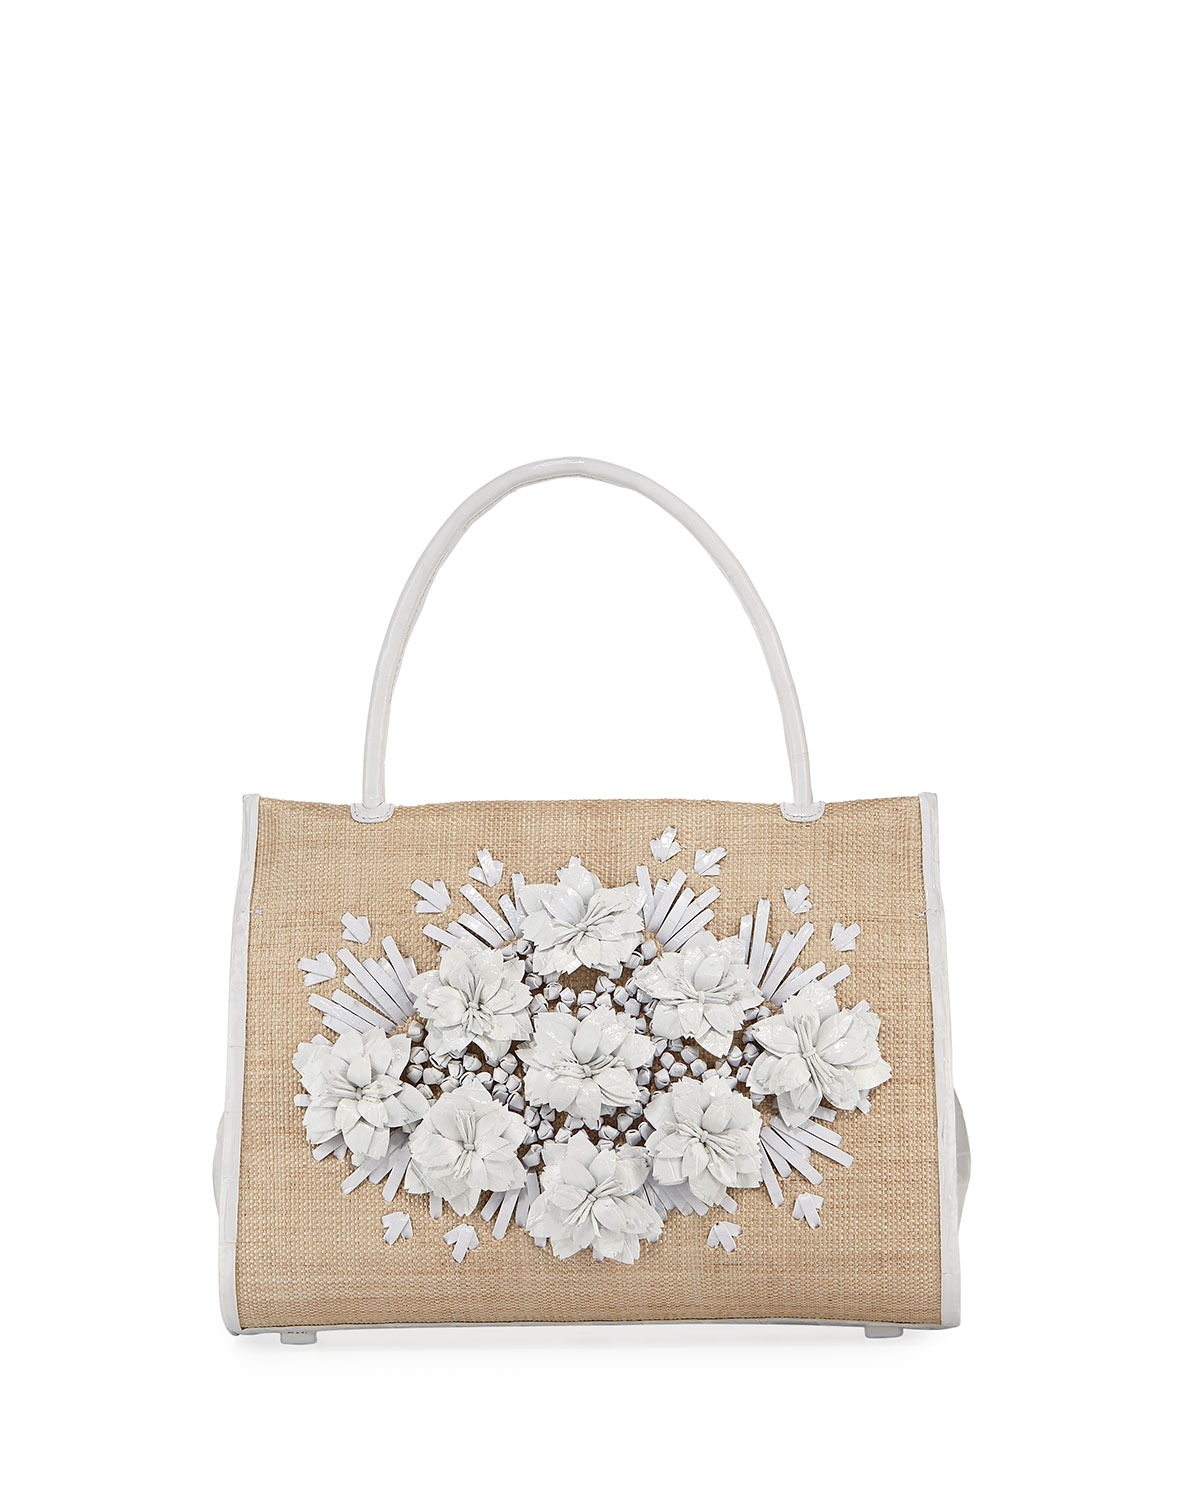 Wallis Floral Crocodile & Straw Tote Bag